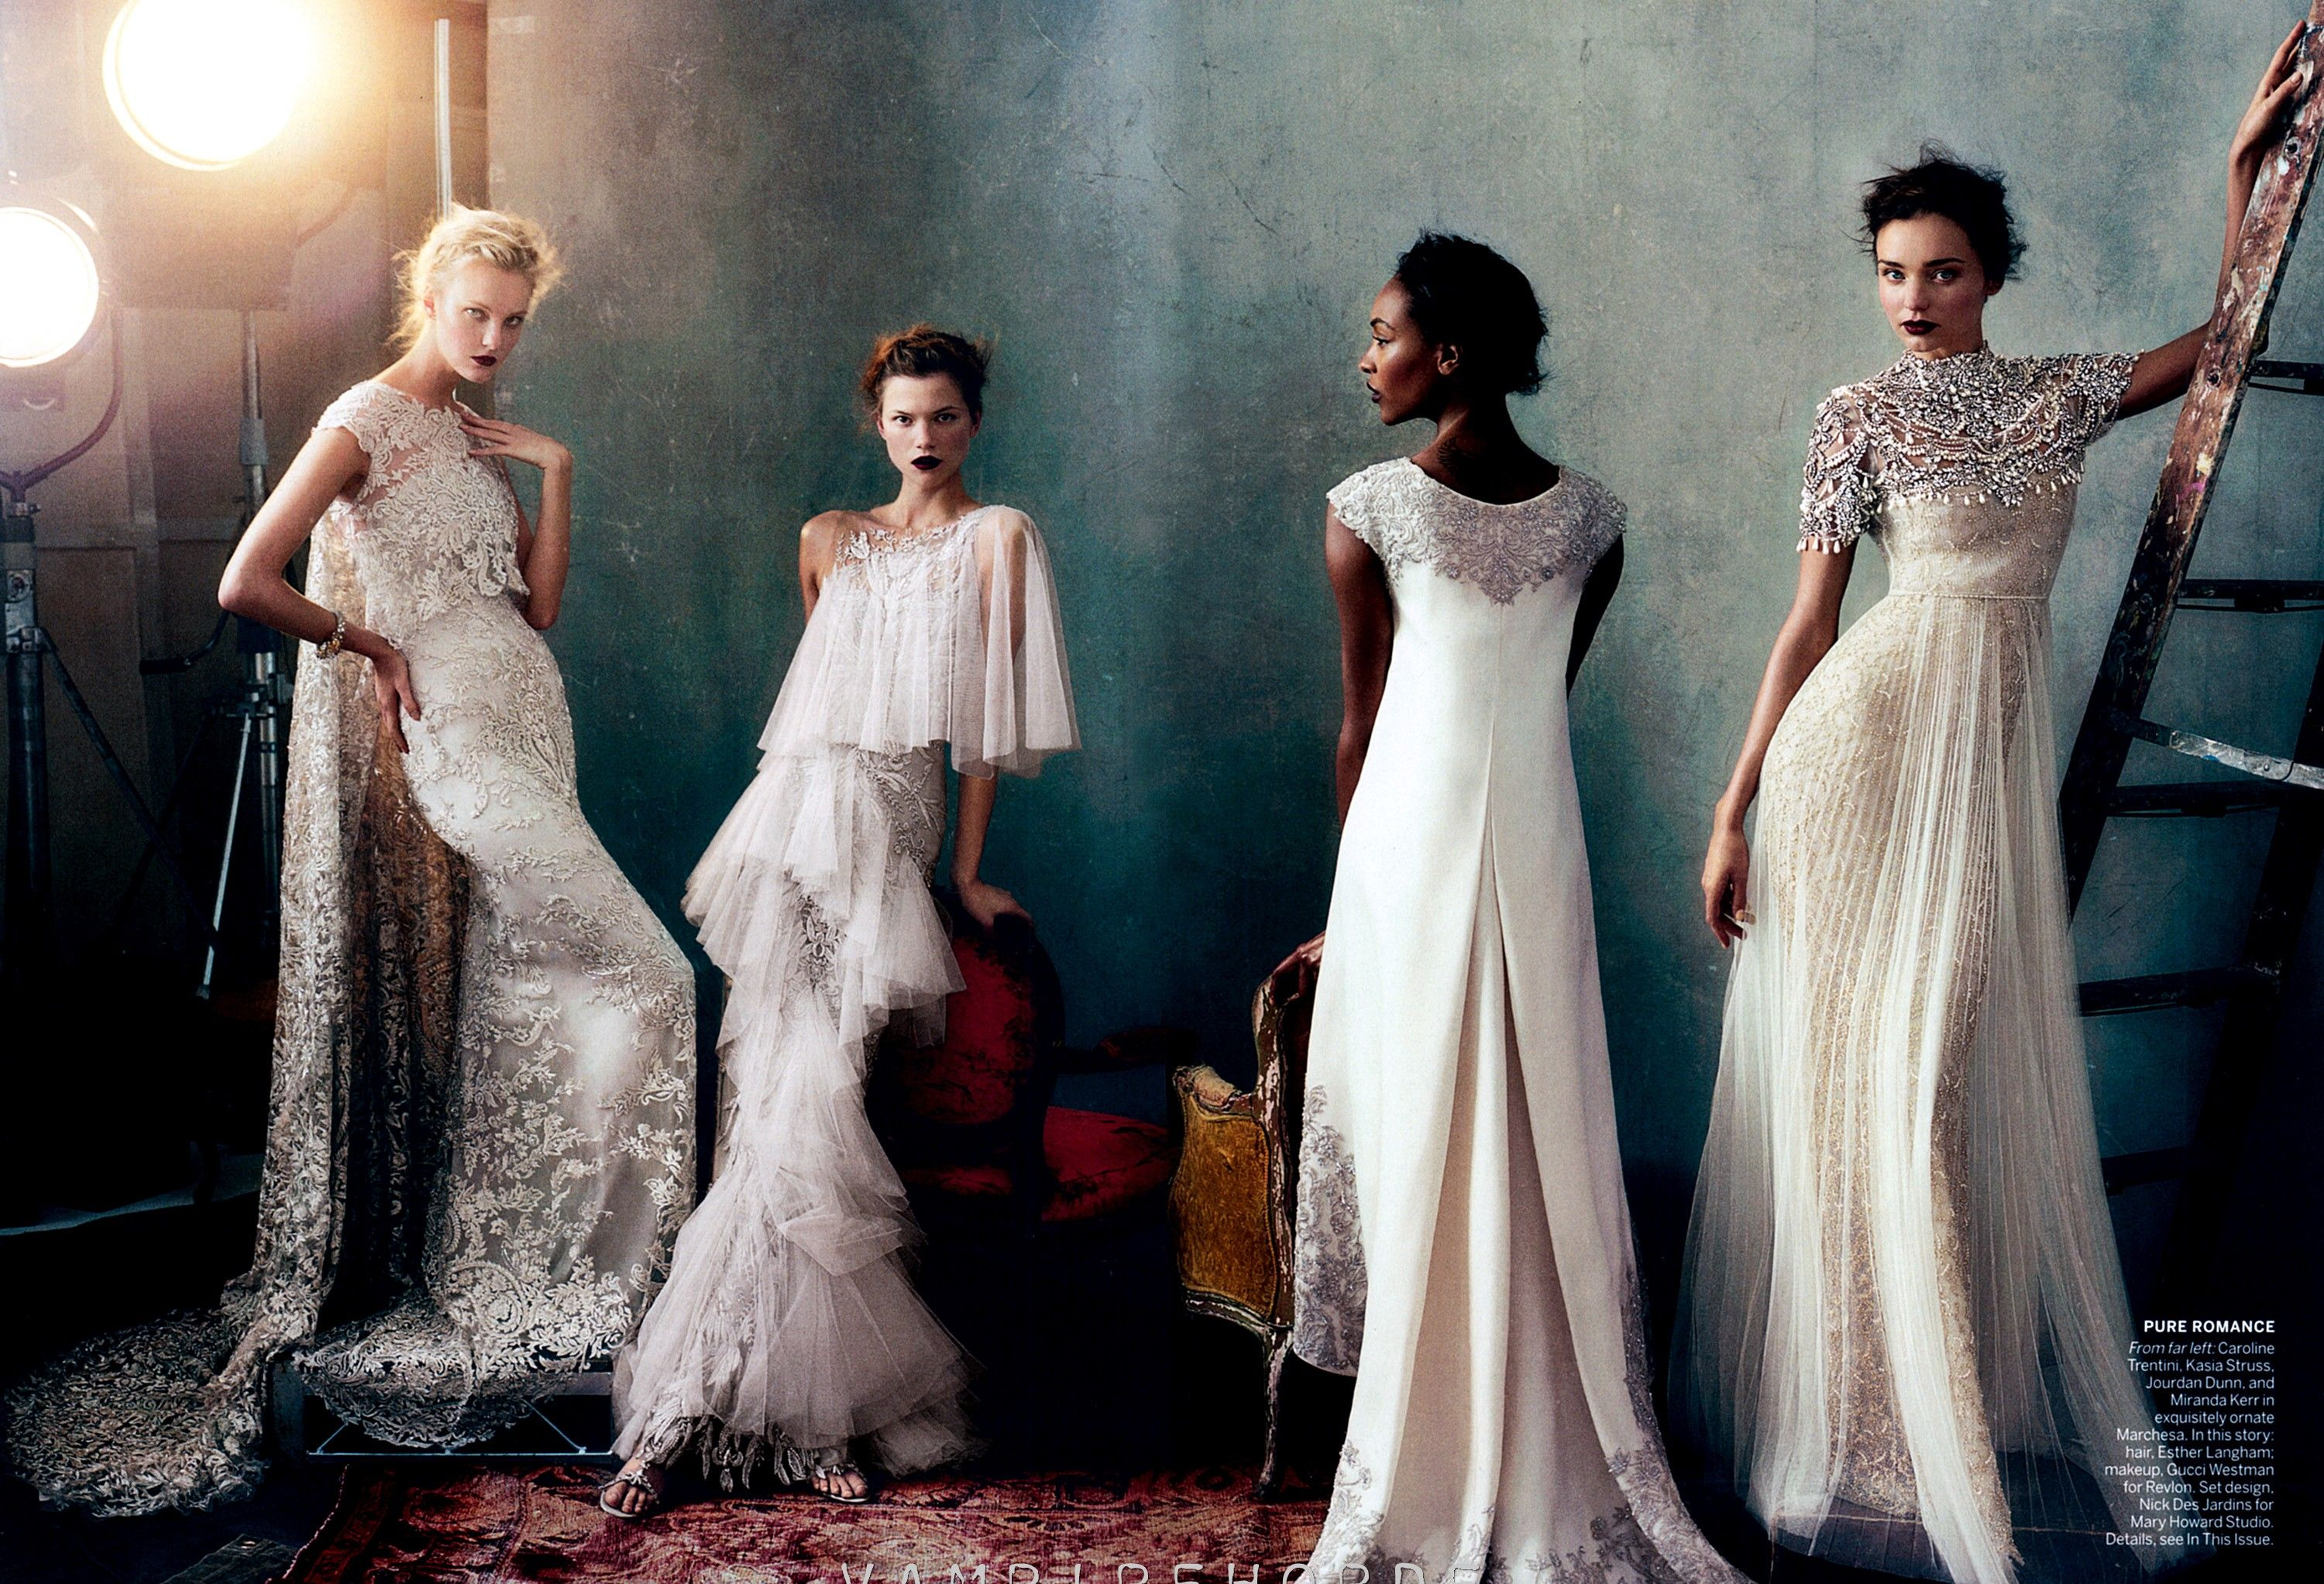 Vogue photoshoot february 2013 marchesa gowns memorable vogue photoshoot february 2013 marchesa gowns ombrellifo Images